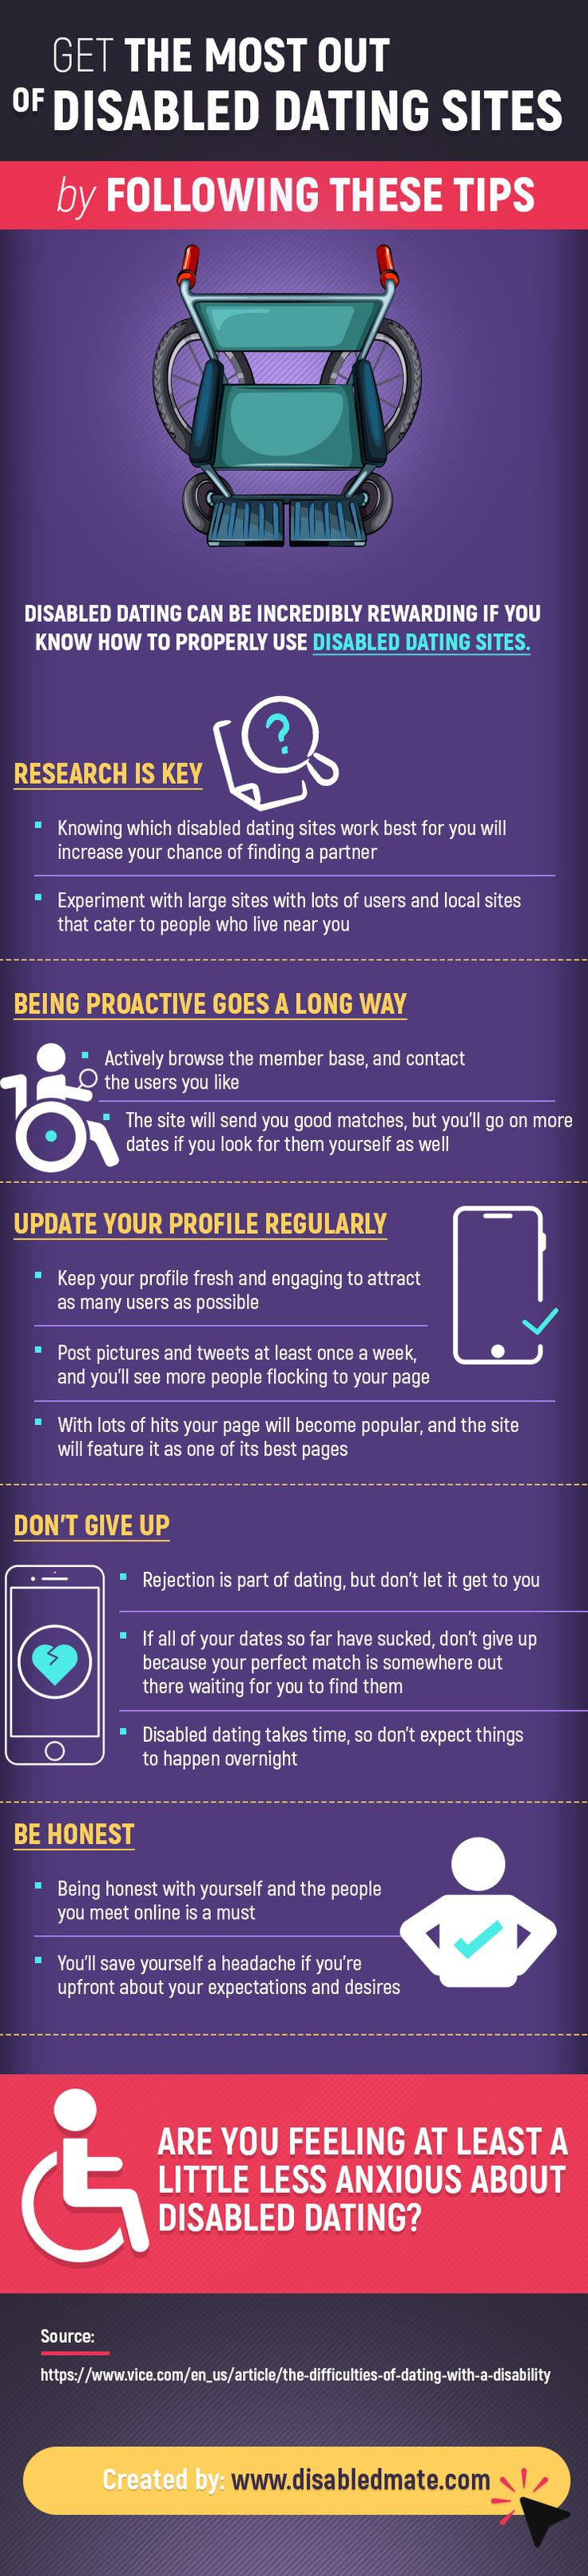 Disabled dating can be incredibly rewarding if you know how to properly use disabled dating sites.